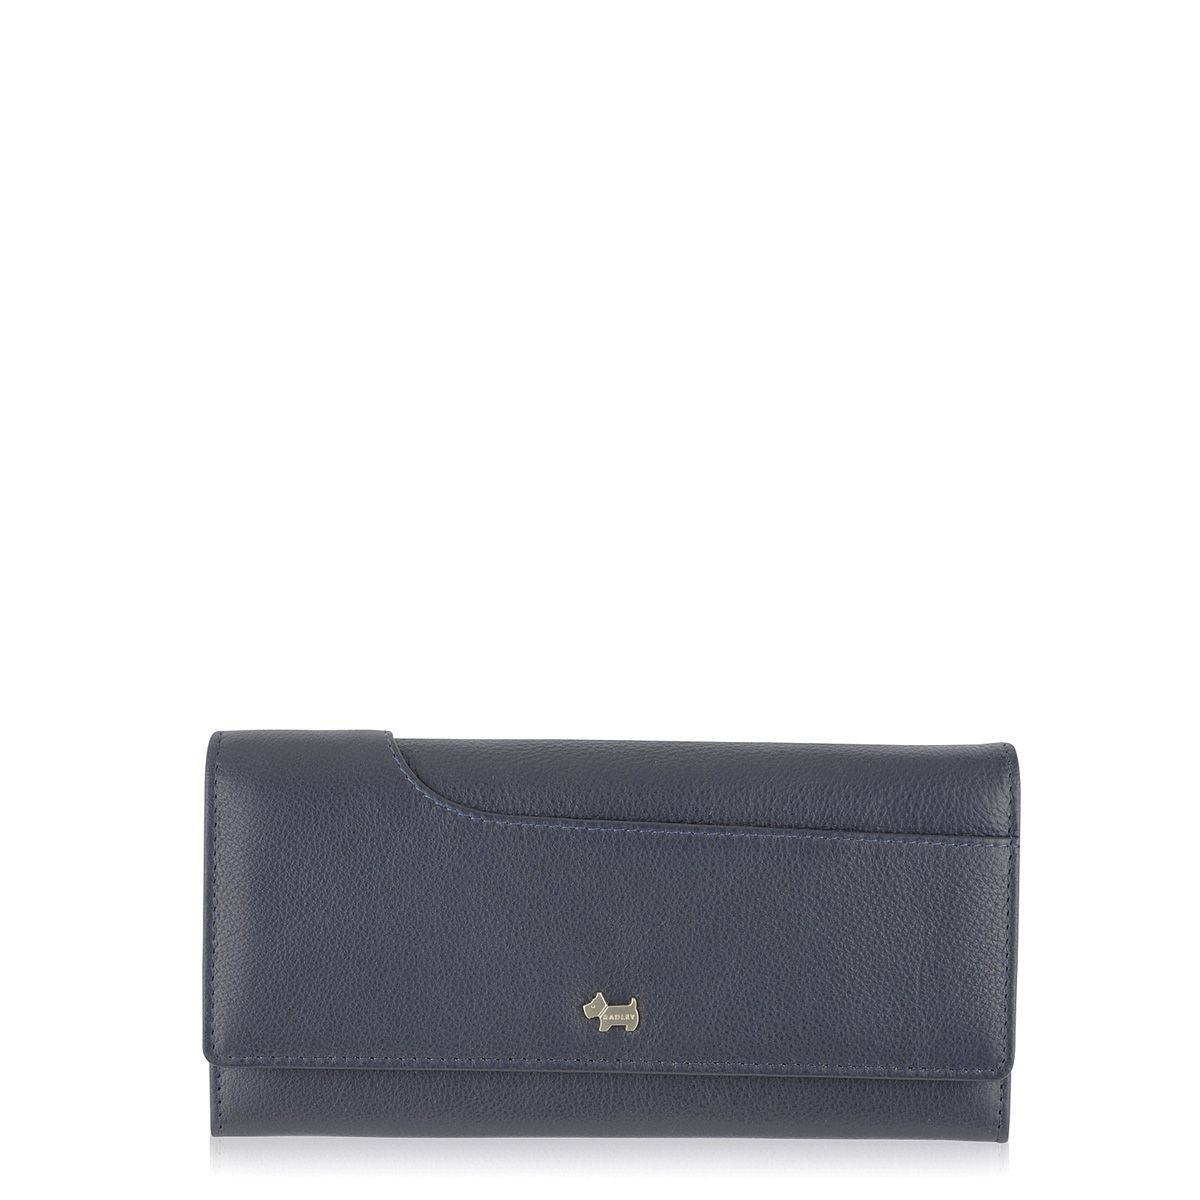 Radley Pocket bag flapover matinee purse Navy